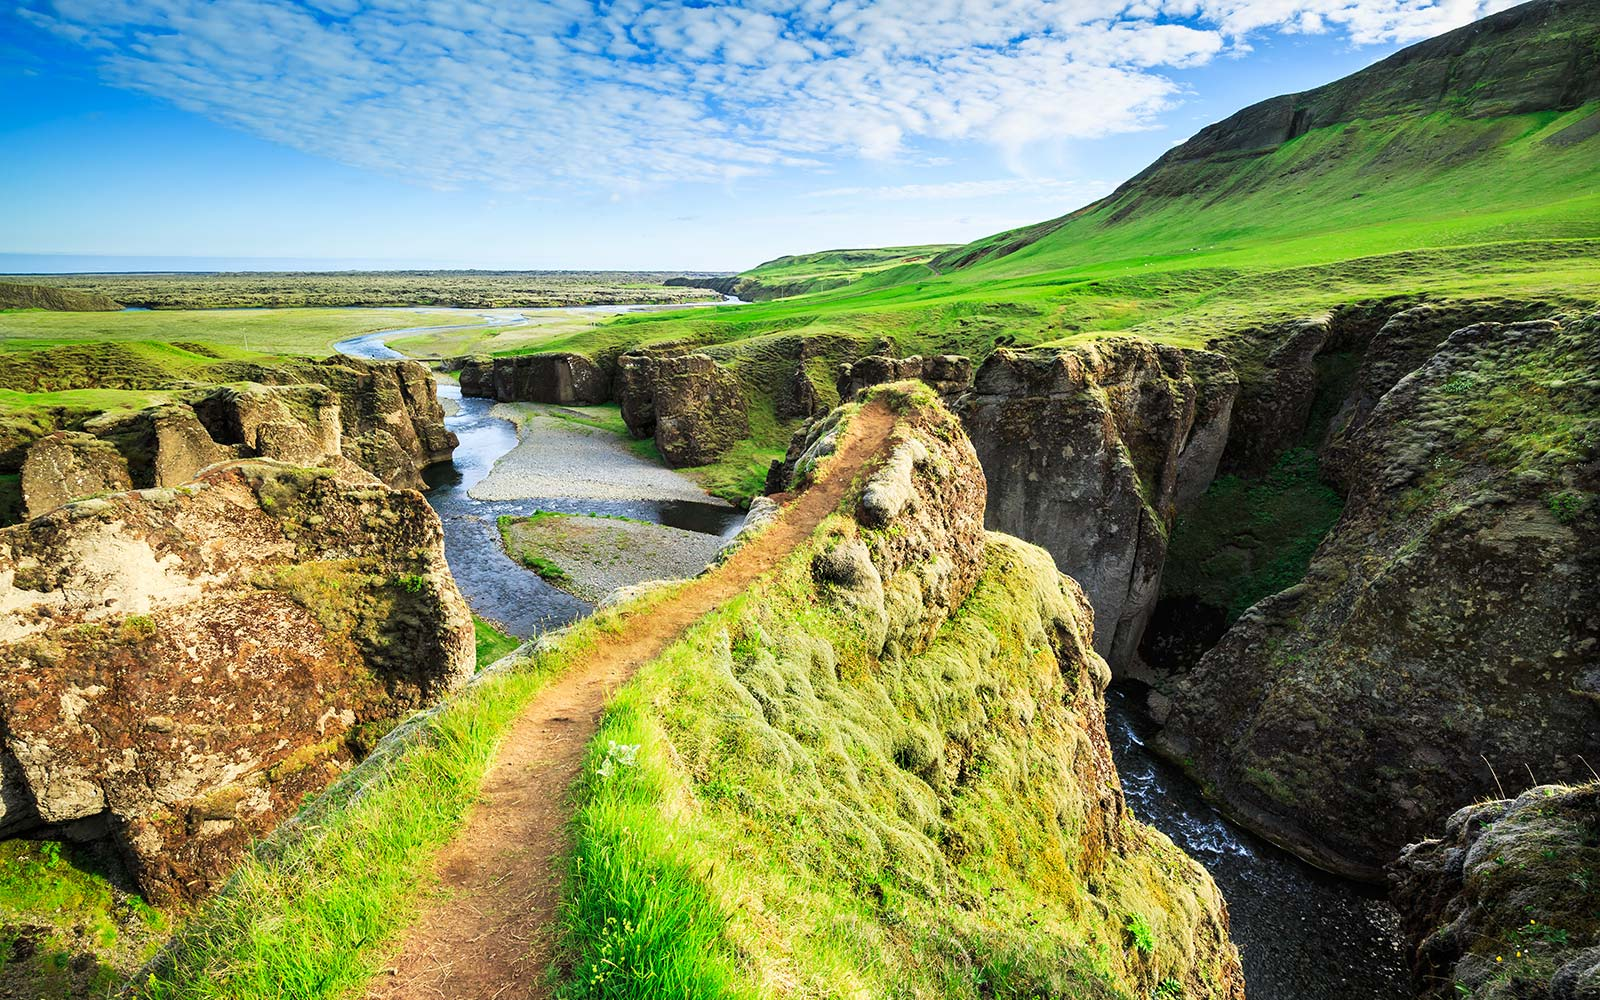 Super Cheap Summer Flights to Iceland on Sale Now for $245 Round-trip